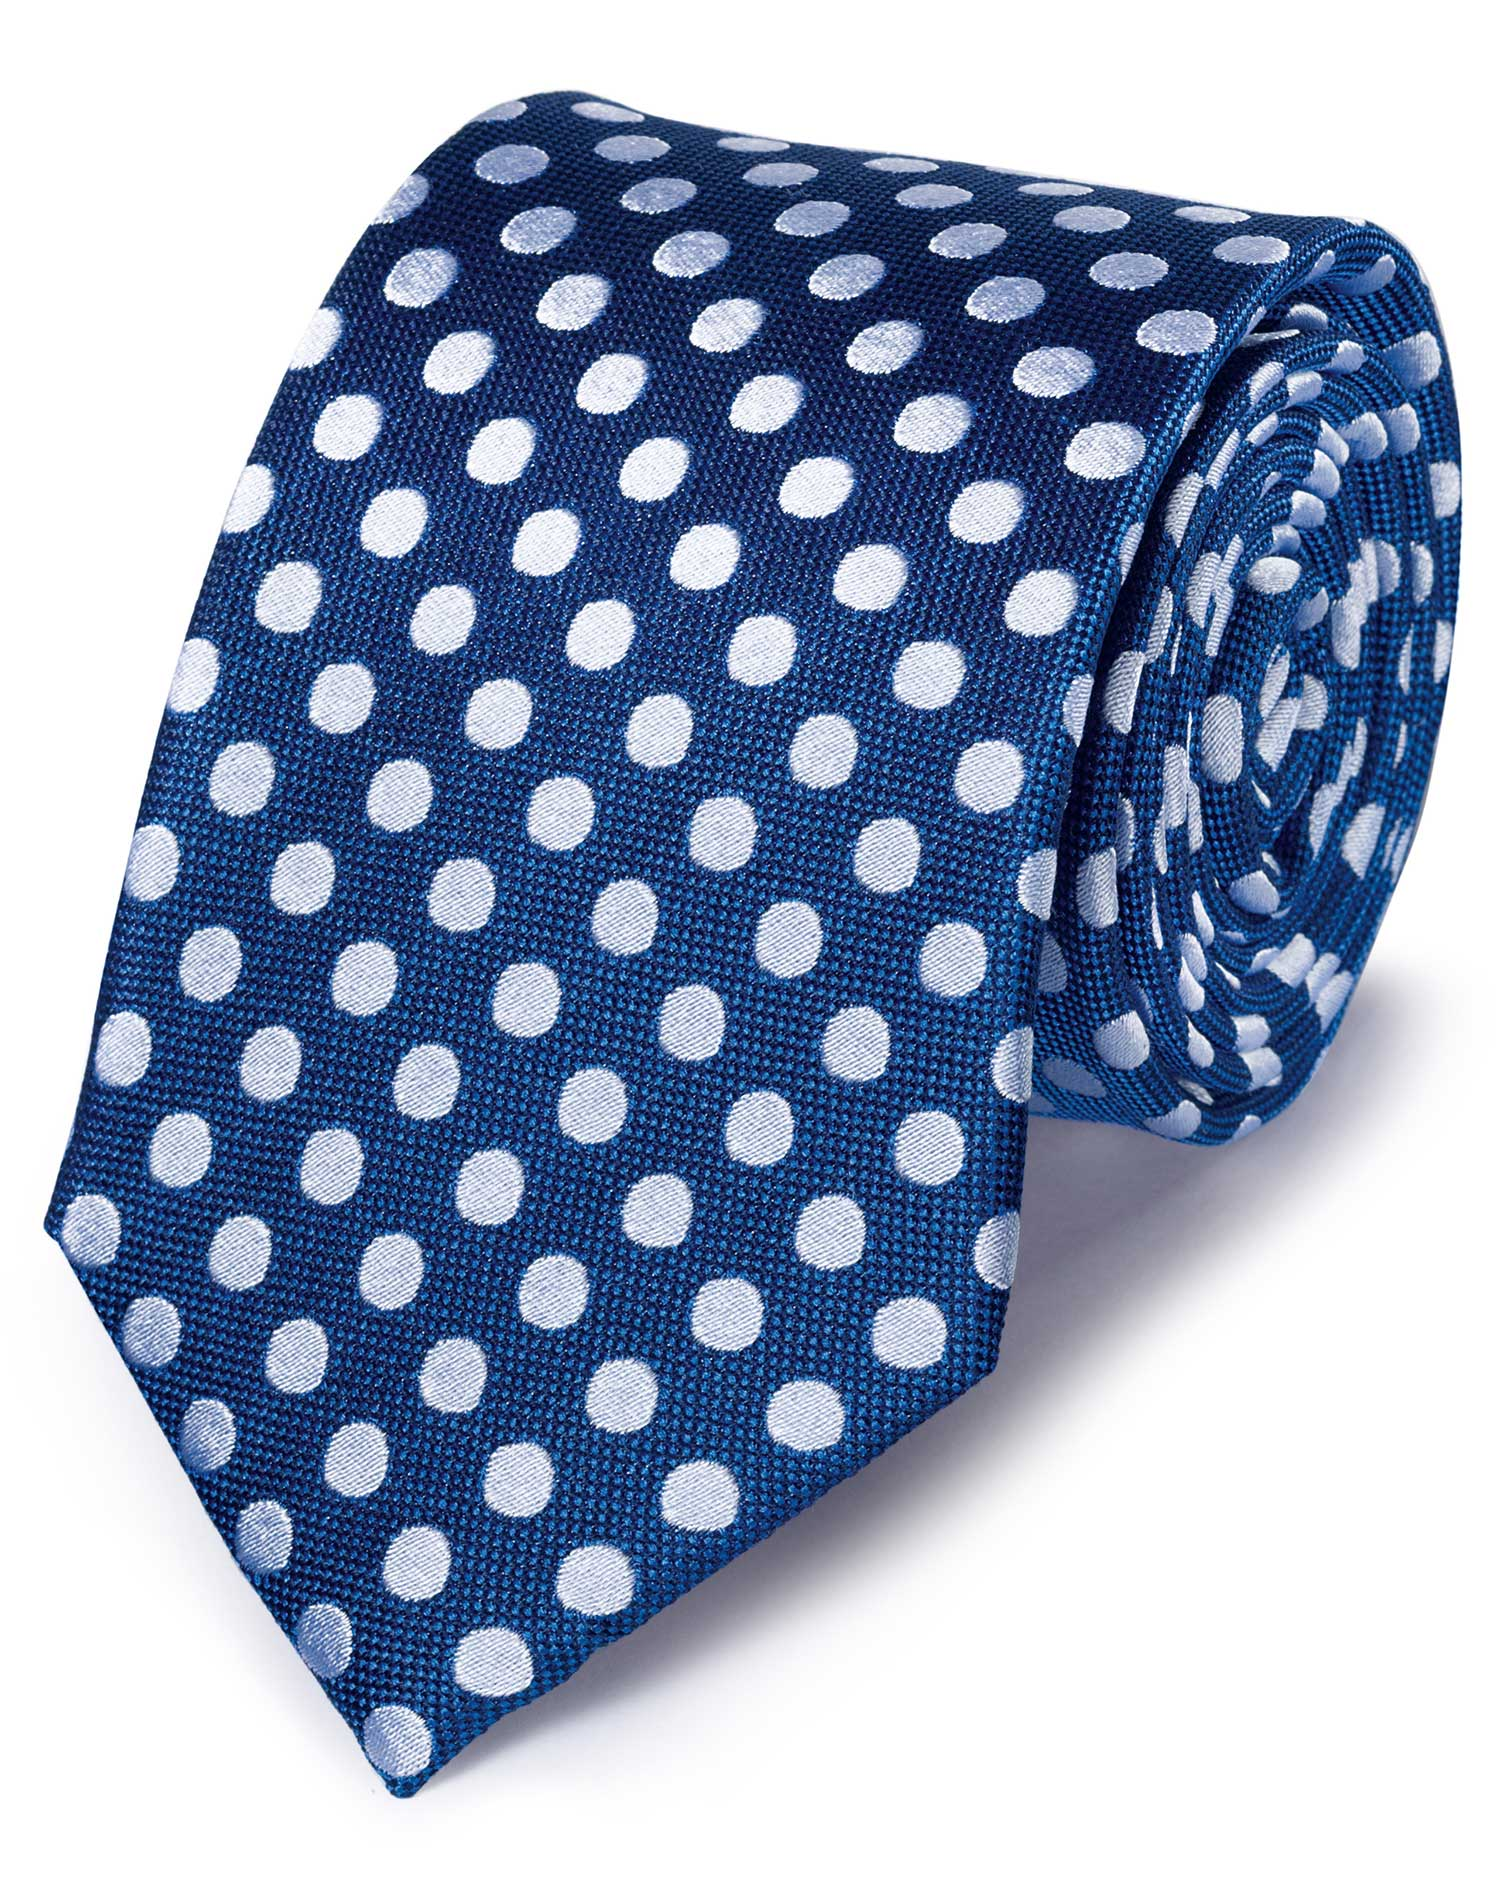 Royal and White Silk Large Spot Classic Tie Size OSFA by Charles Tyrwhitt